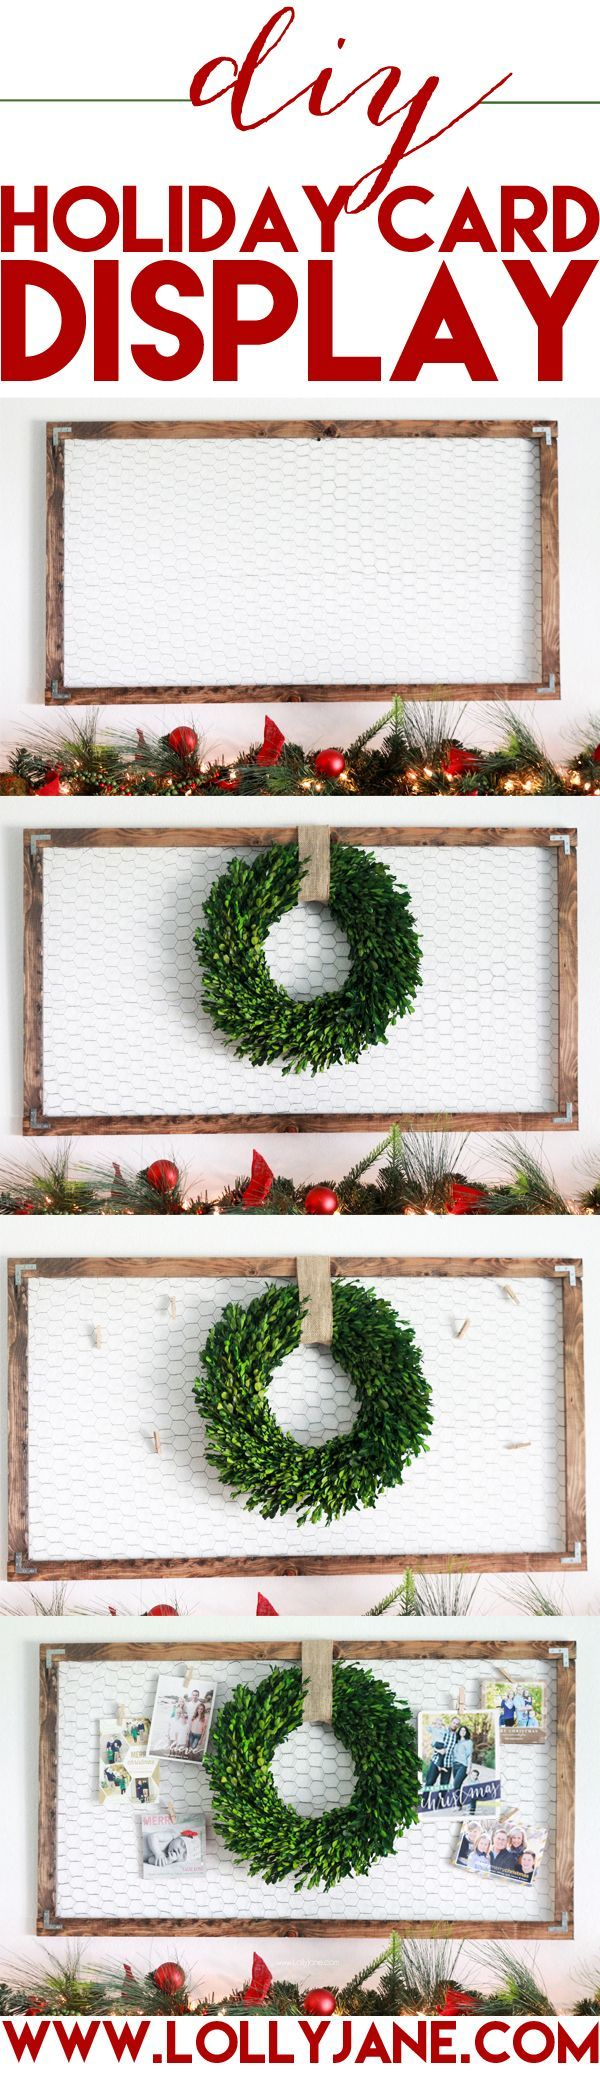 Best 25 diy holiday cards ideas on pinterest holiday cards diy christmas holiday card display put chicken wire on the back of large frame usd clothespins to attach cards to chicken wire magicingreecefo Image collections